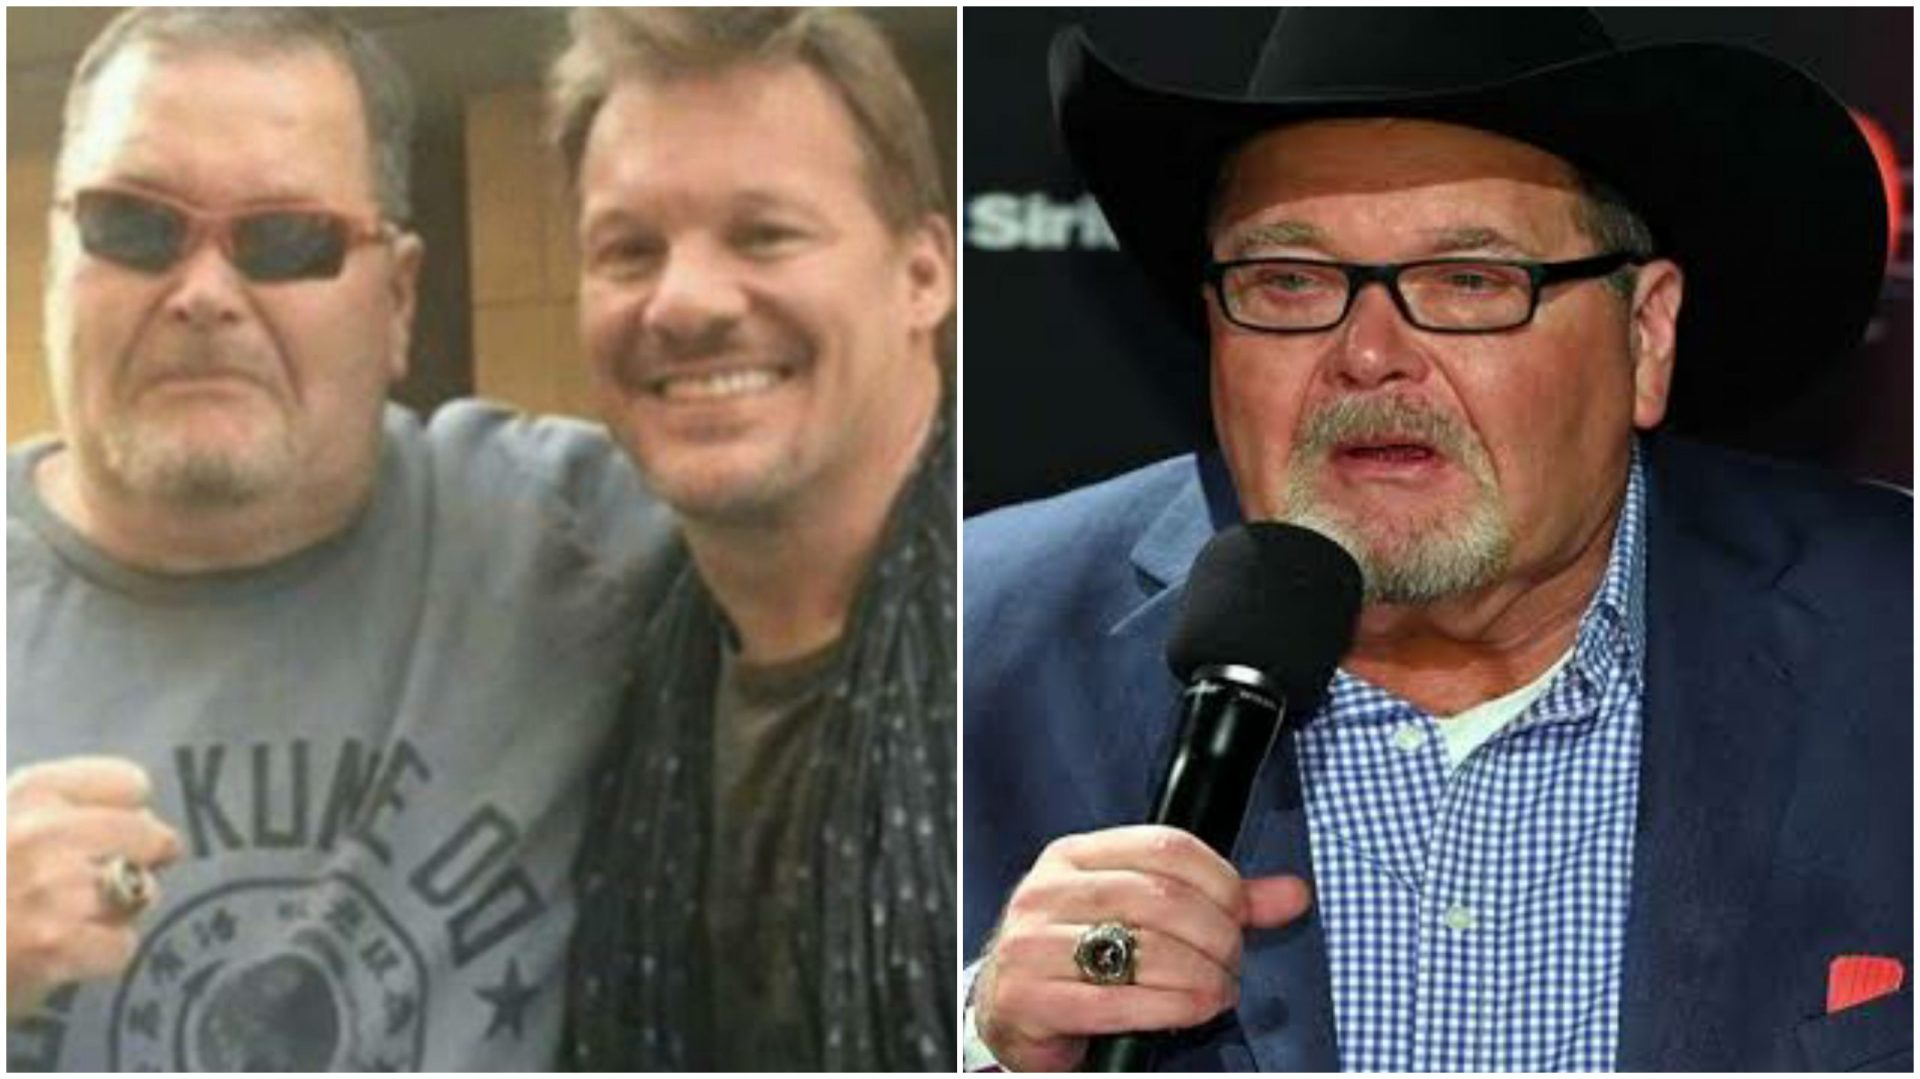 Chris Jericho, Aron Stevens and others rush to the support of Jim Ross following Dynamite slip-up - THE SPORTS ROOM